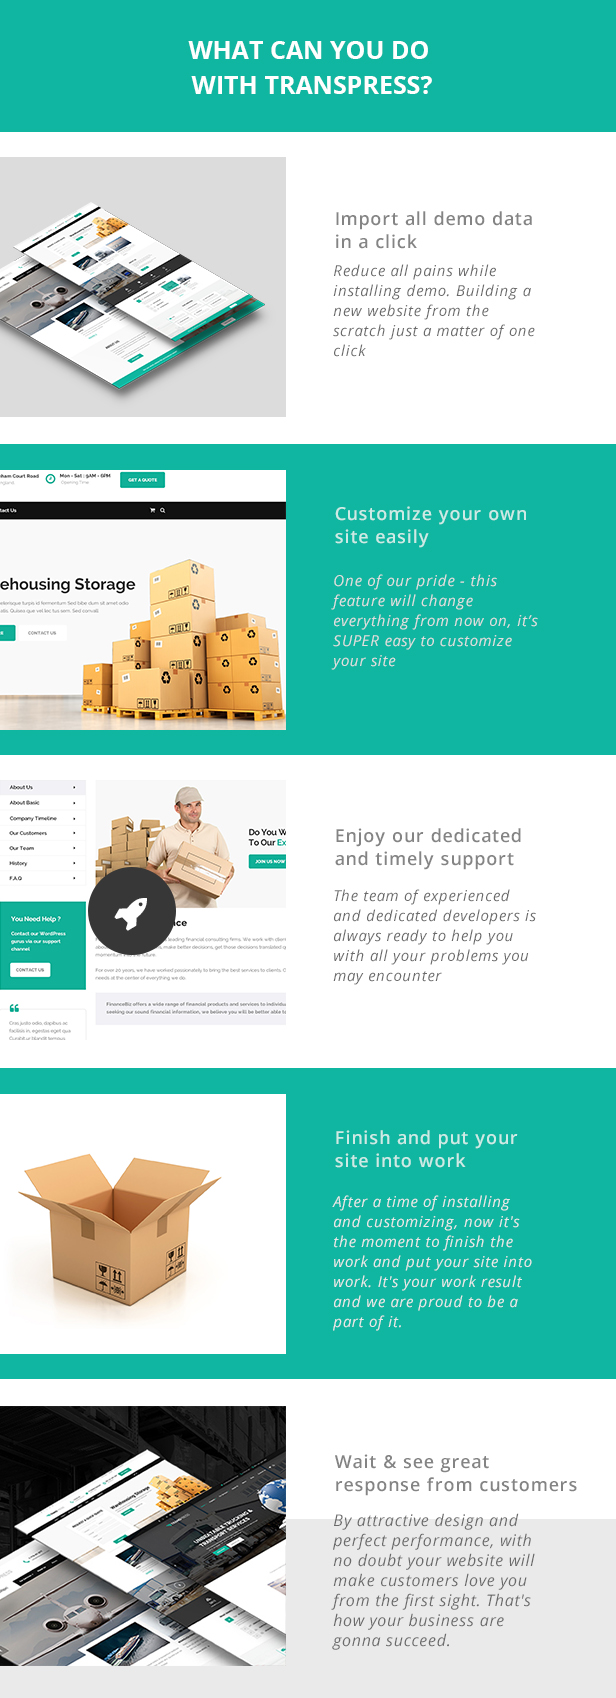 Transpress Transport Logistics and warehouse WordPress theme